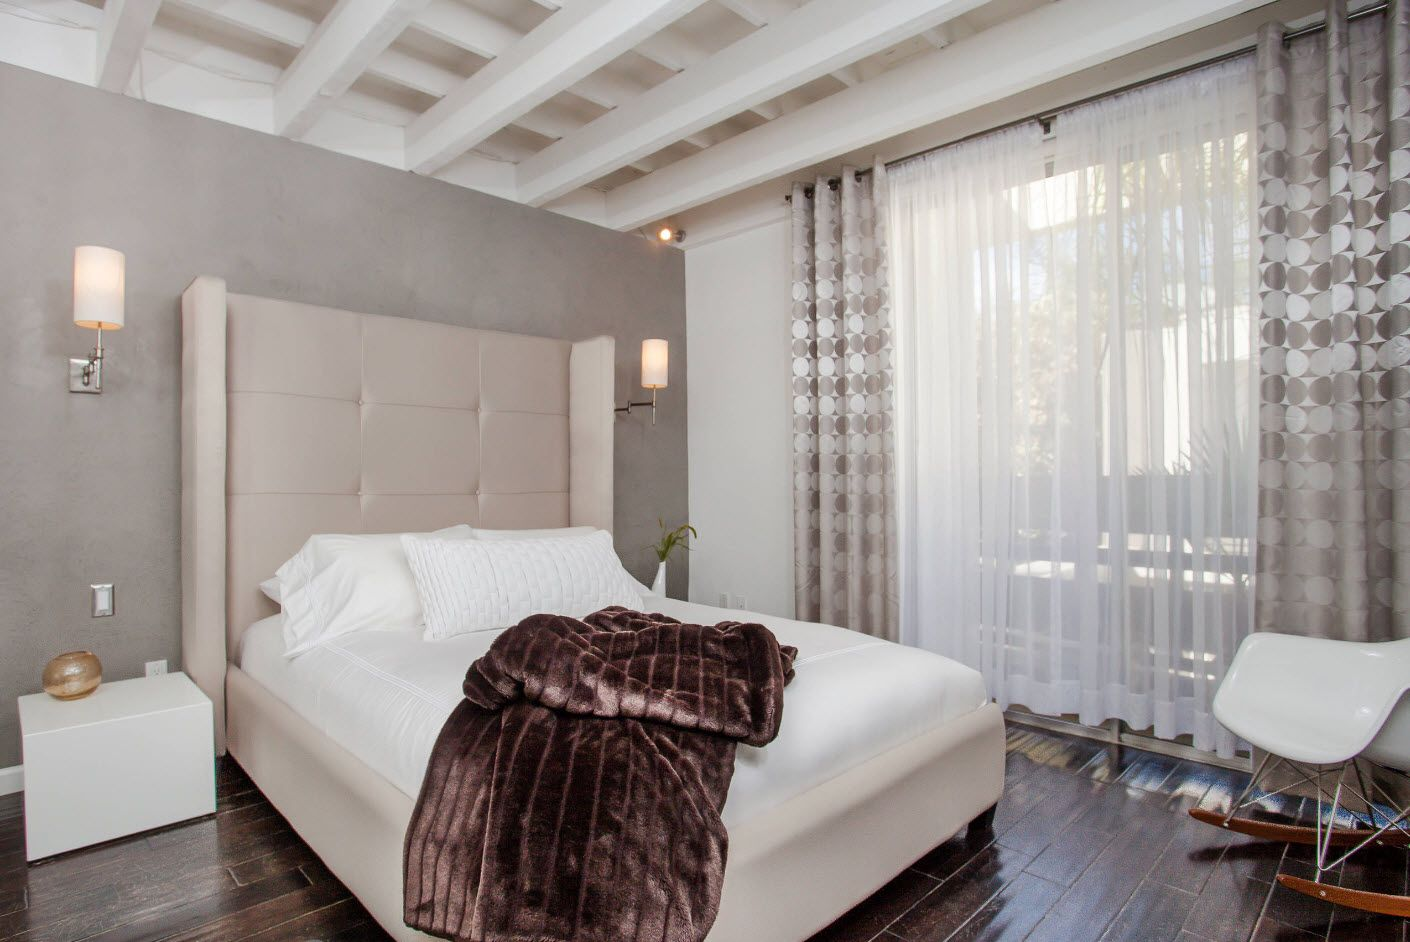 white wooden grid ceiling at the modern decorated interior of the bedroom